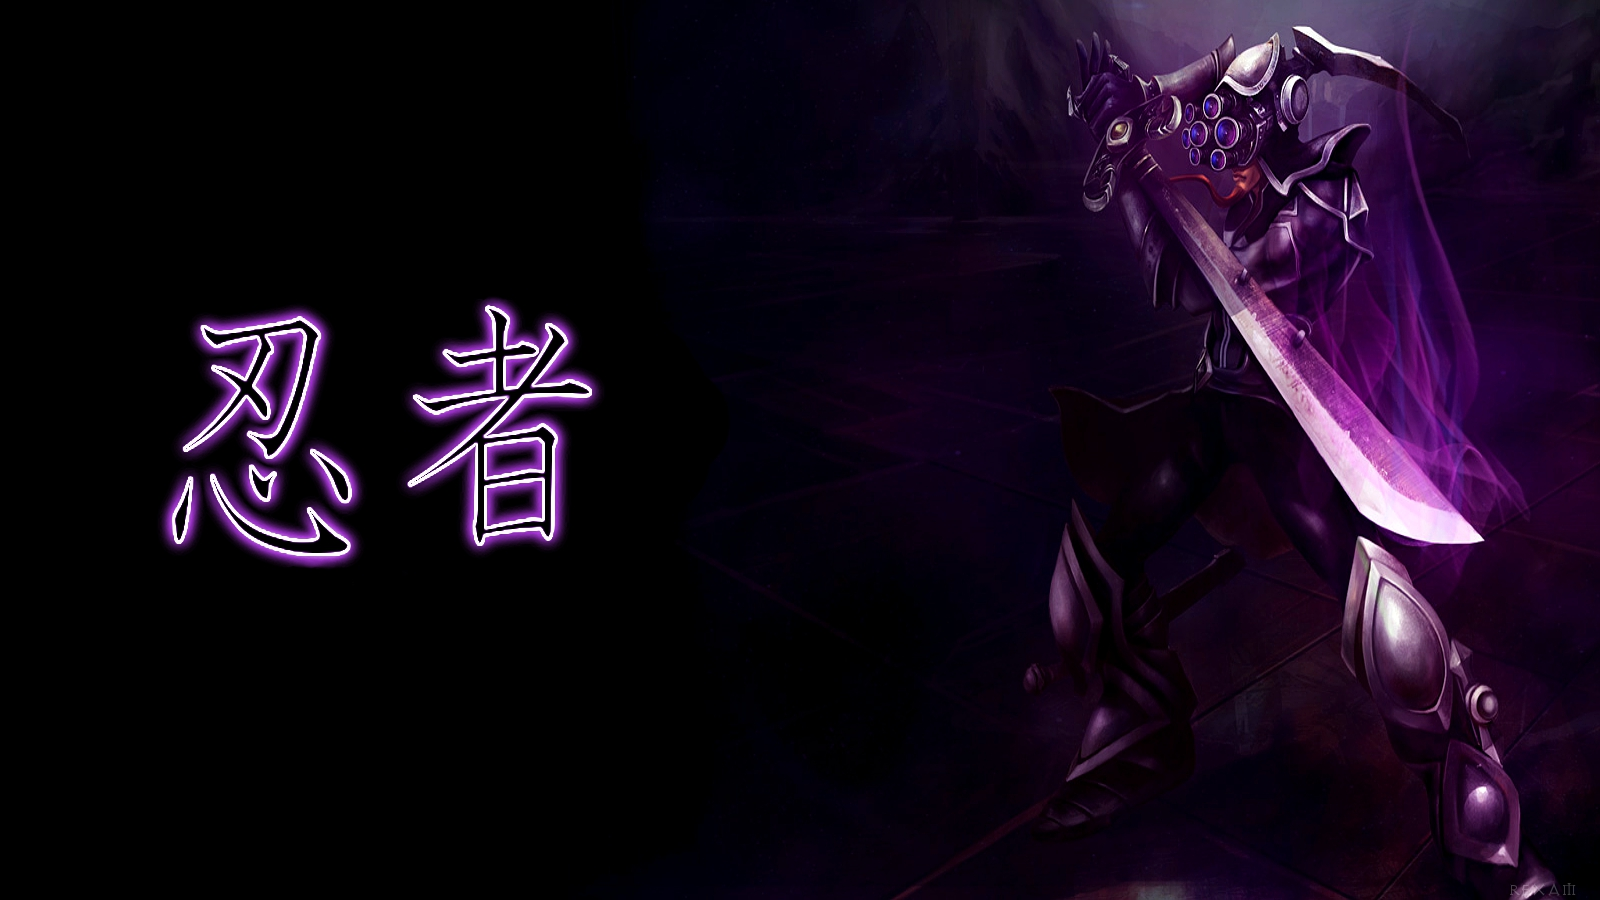 Master Yi Wallpaper and Background Image   1600x900   ID ...